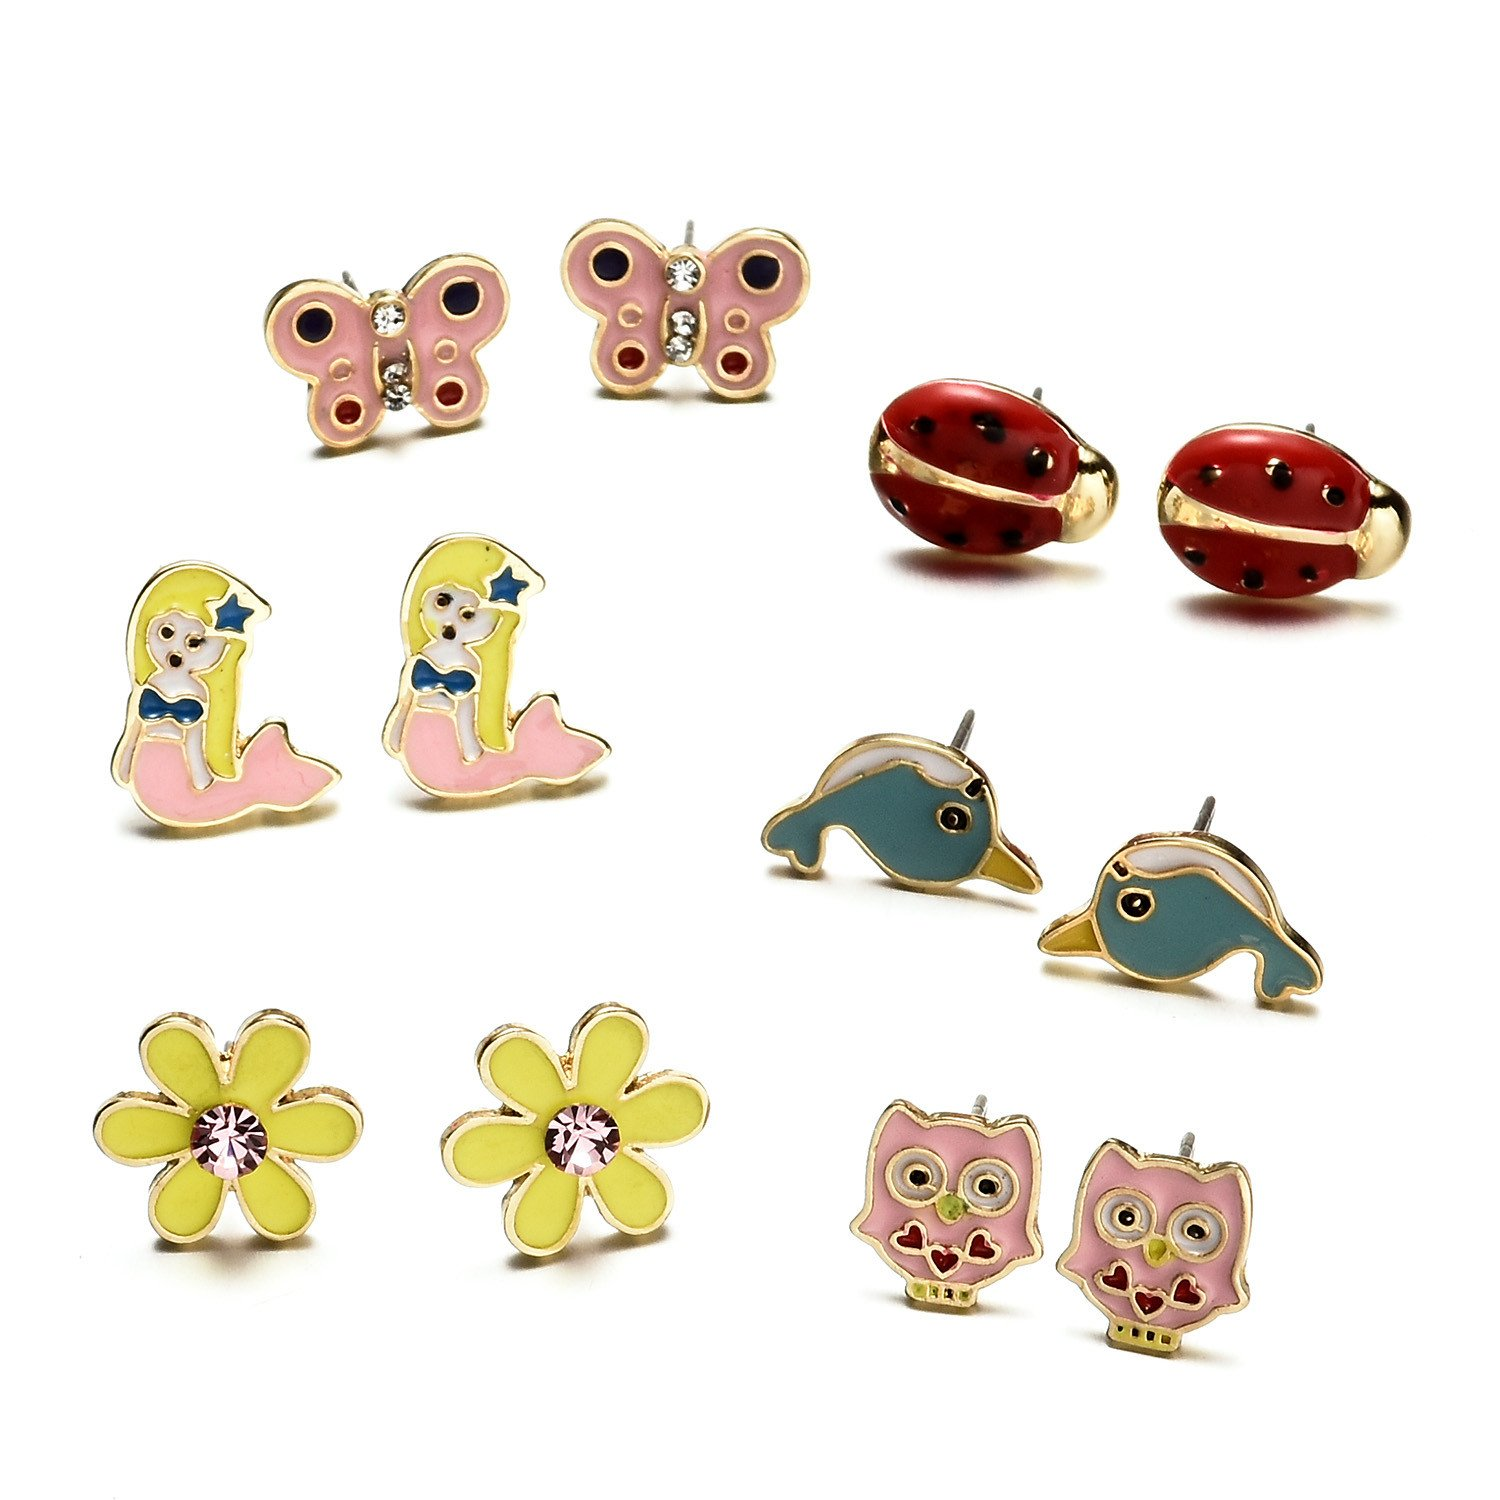 f8fb6afdd ... Cute Animals Stud Earrings Set For Kids Girls Hypoallergenic  Nickel-free Dragon larger image